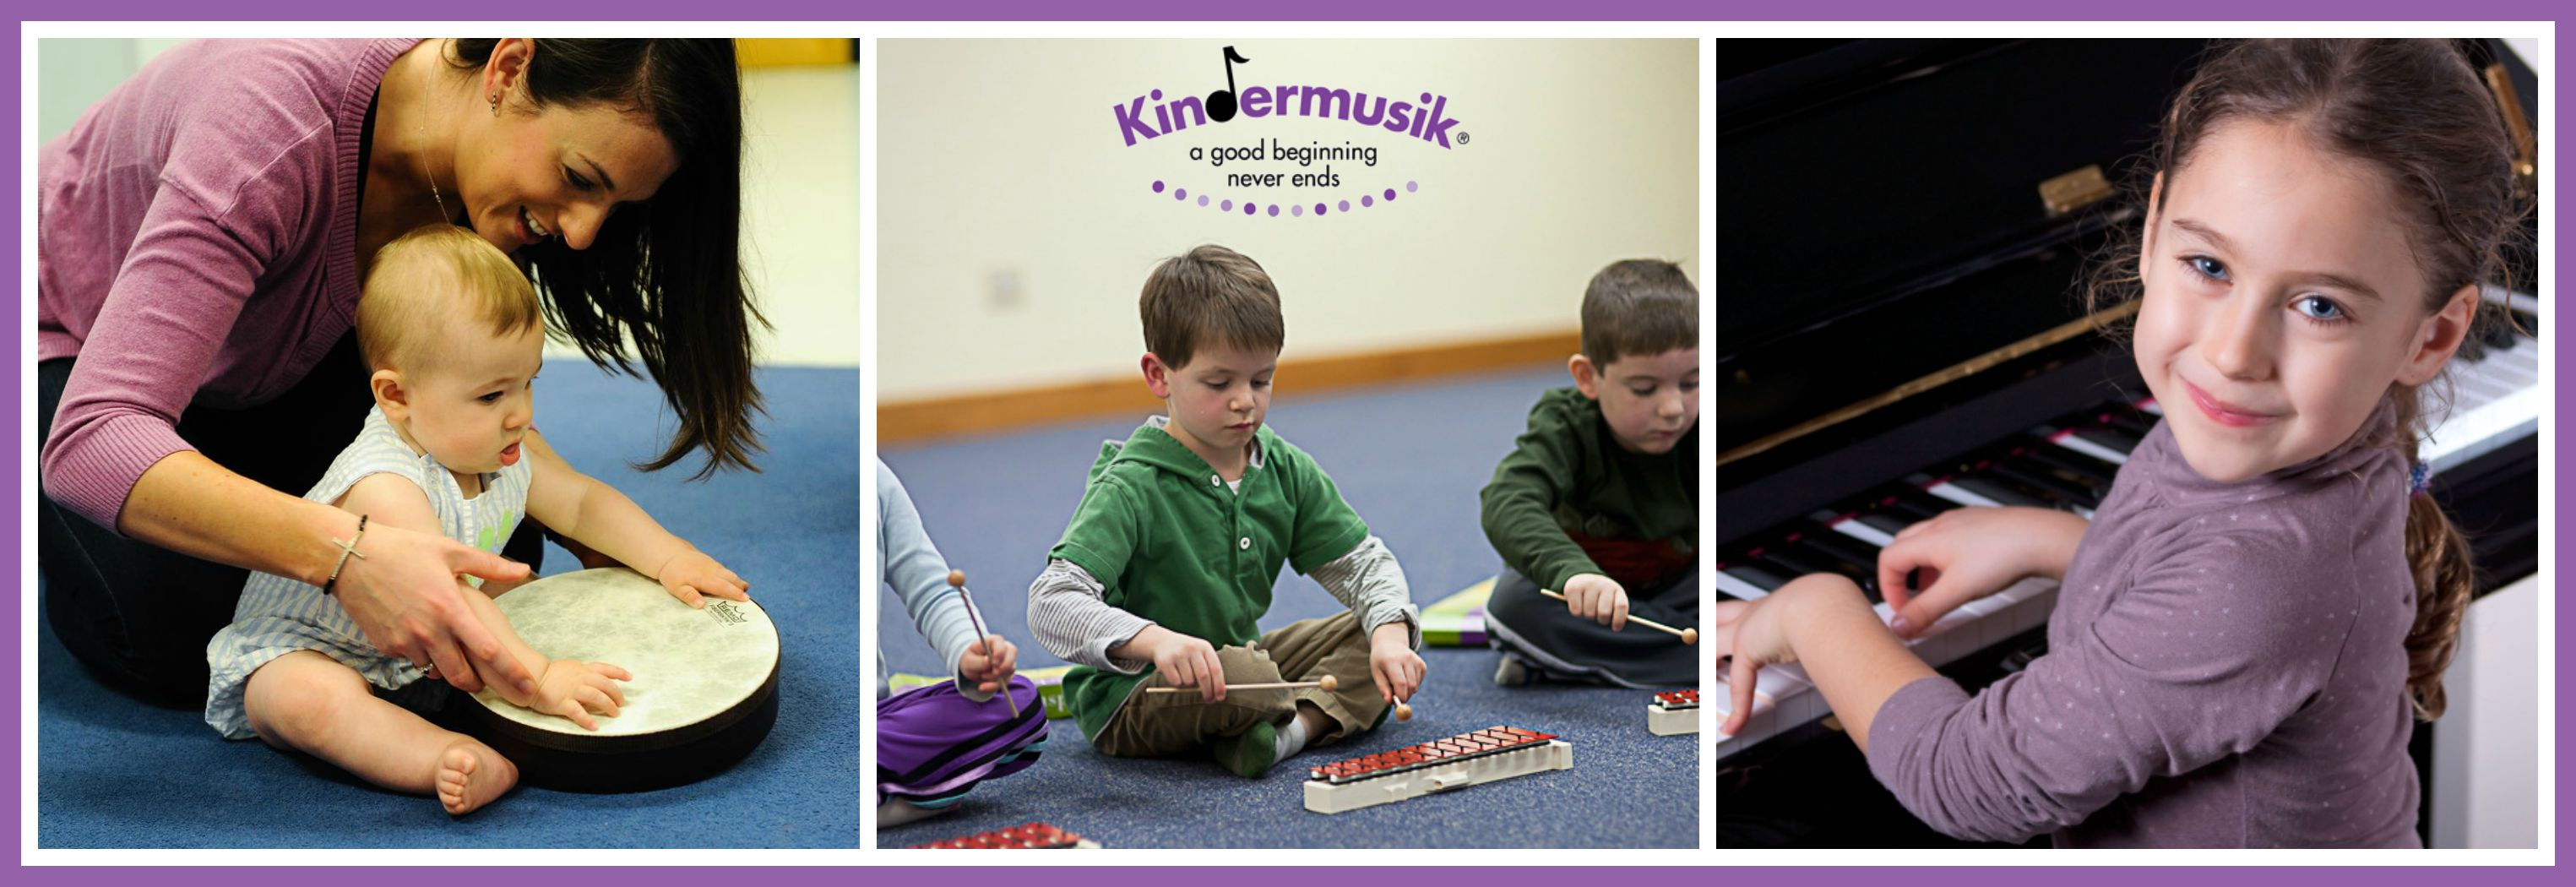 Kindermusik prepares kids for music lessons